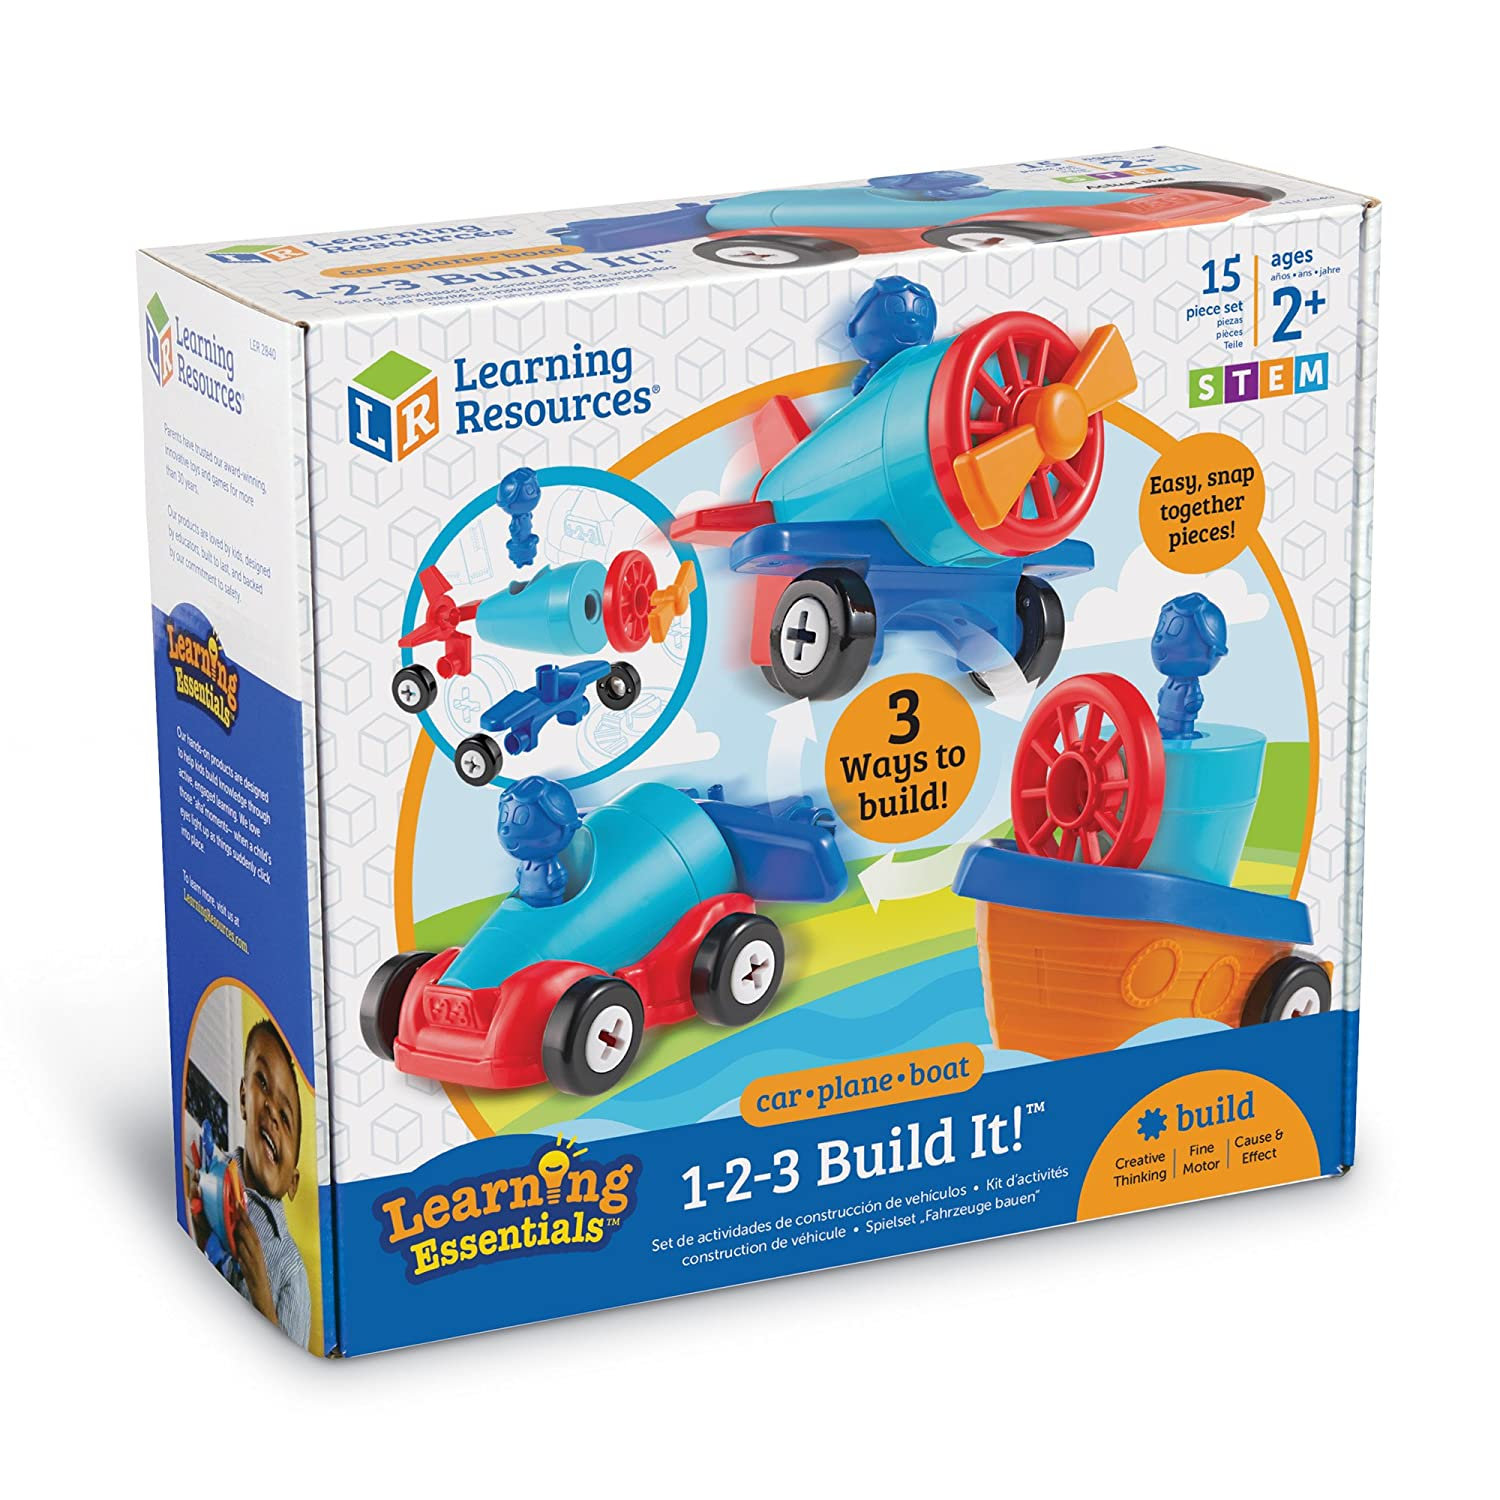 Learning Resources 1-2-3 Build It Rocket 15 Pieces Train Helicopter